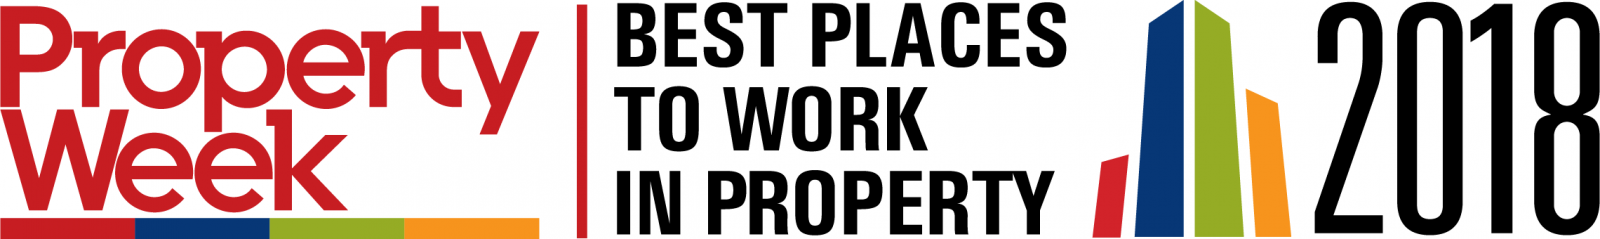 Property Week Best Places To Work In Property 2018